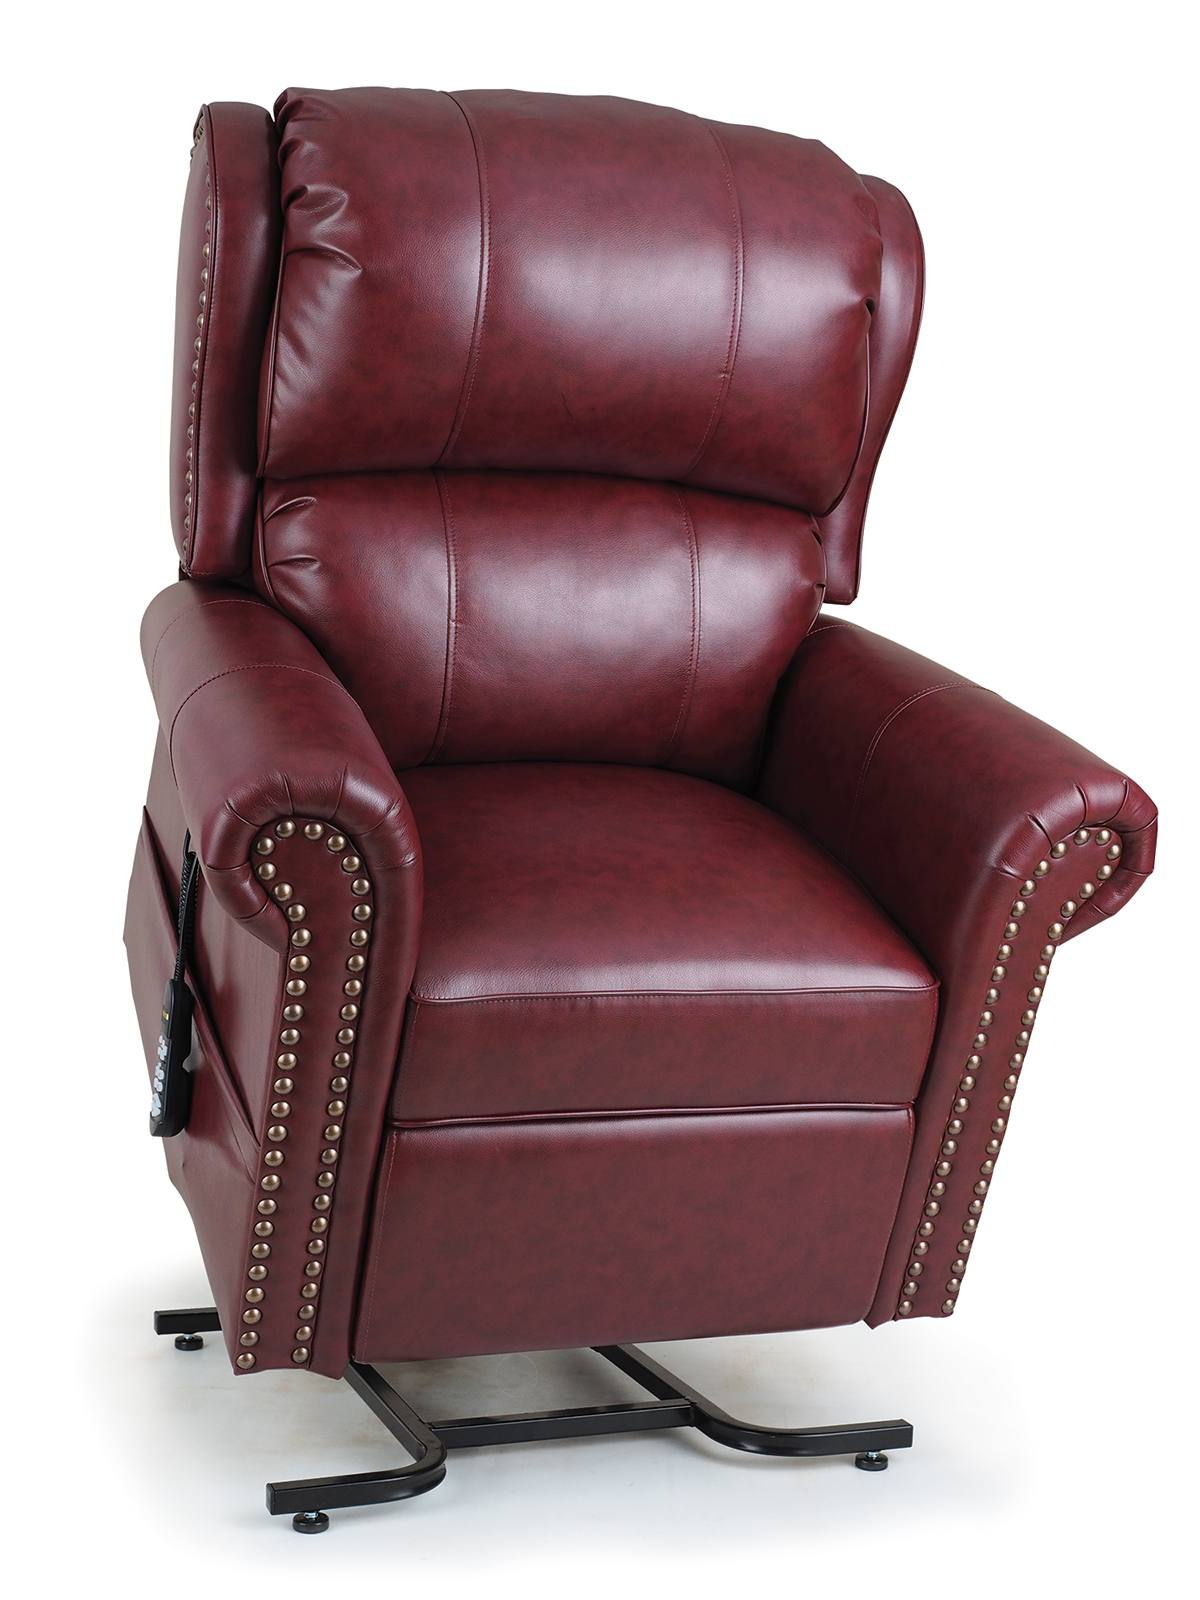 Golden Technologies PUB LIFT CHAIR from ANDERSON HOME HEALTH SUPPLIES